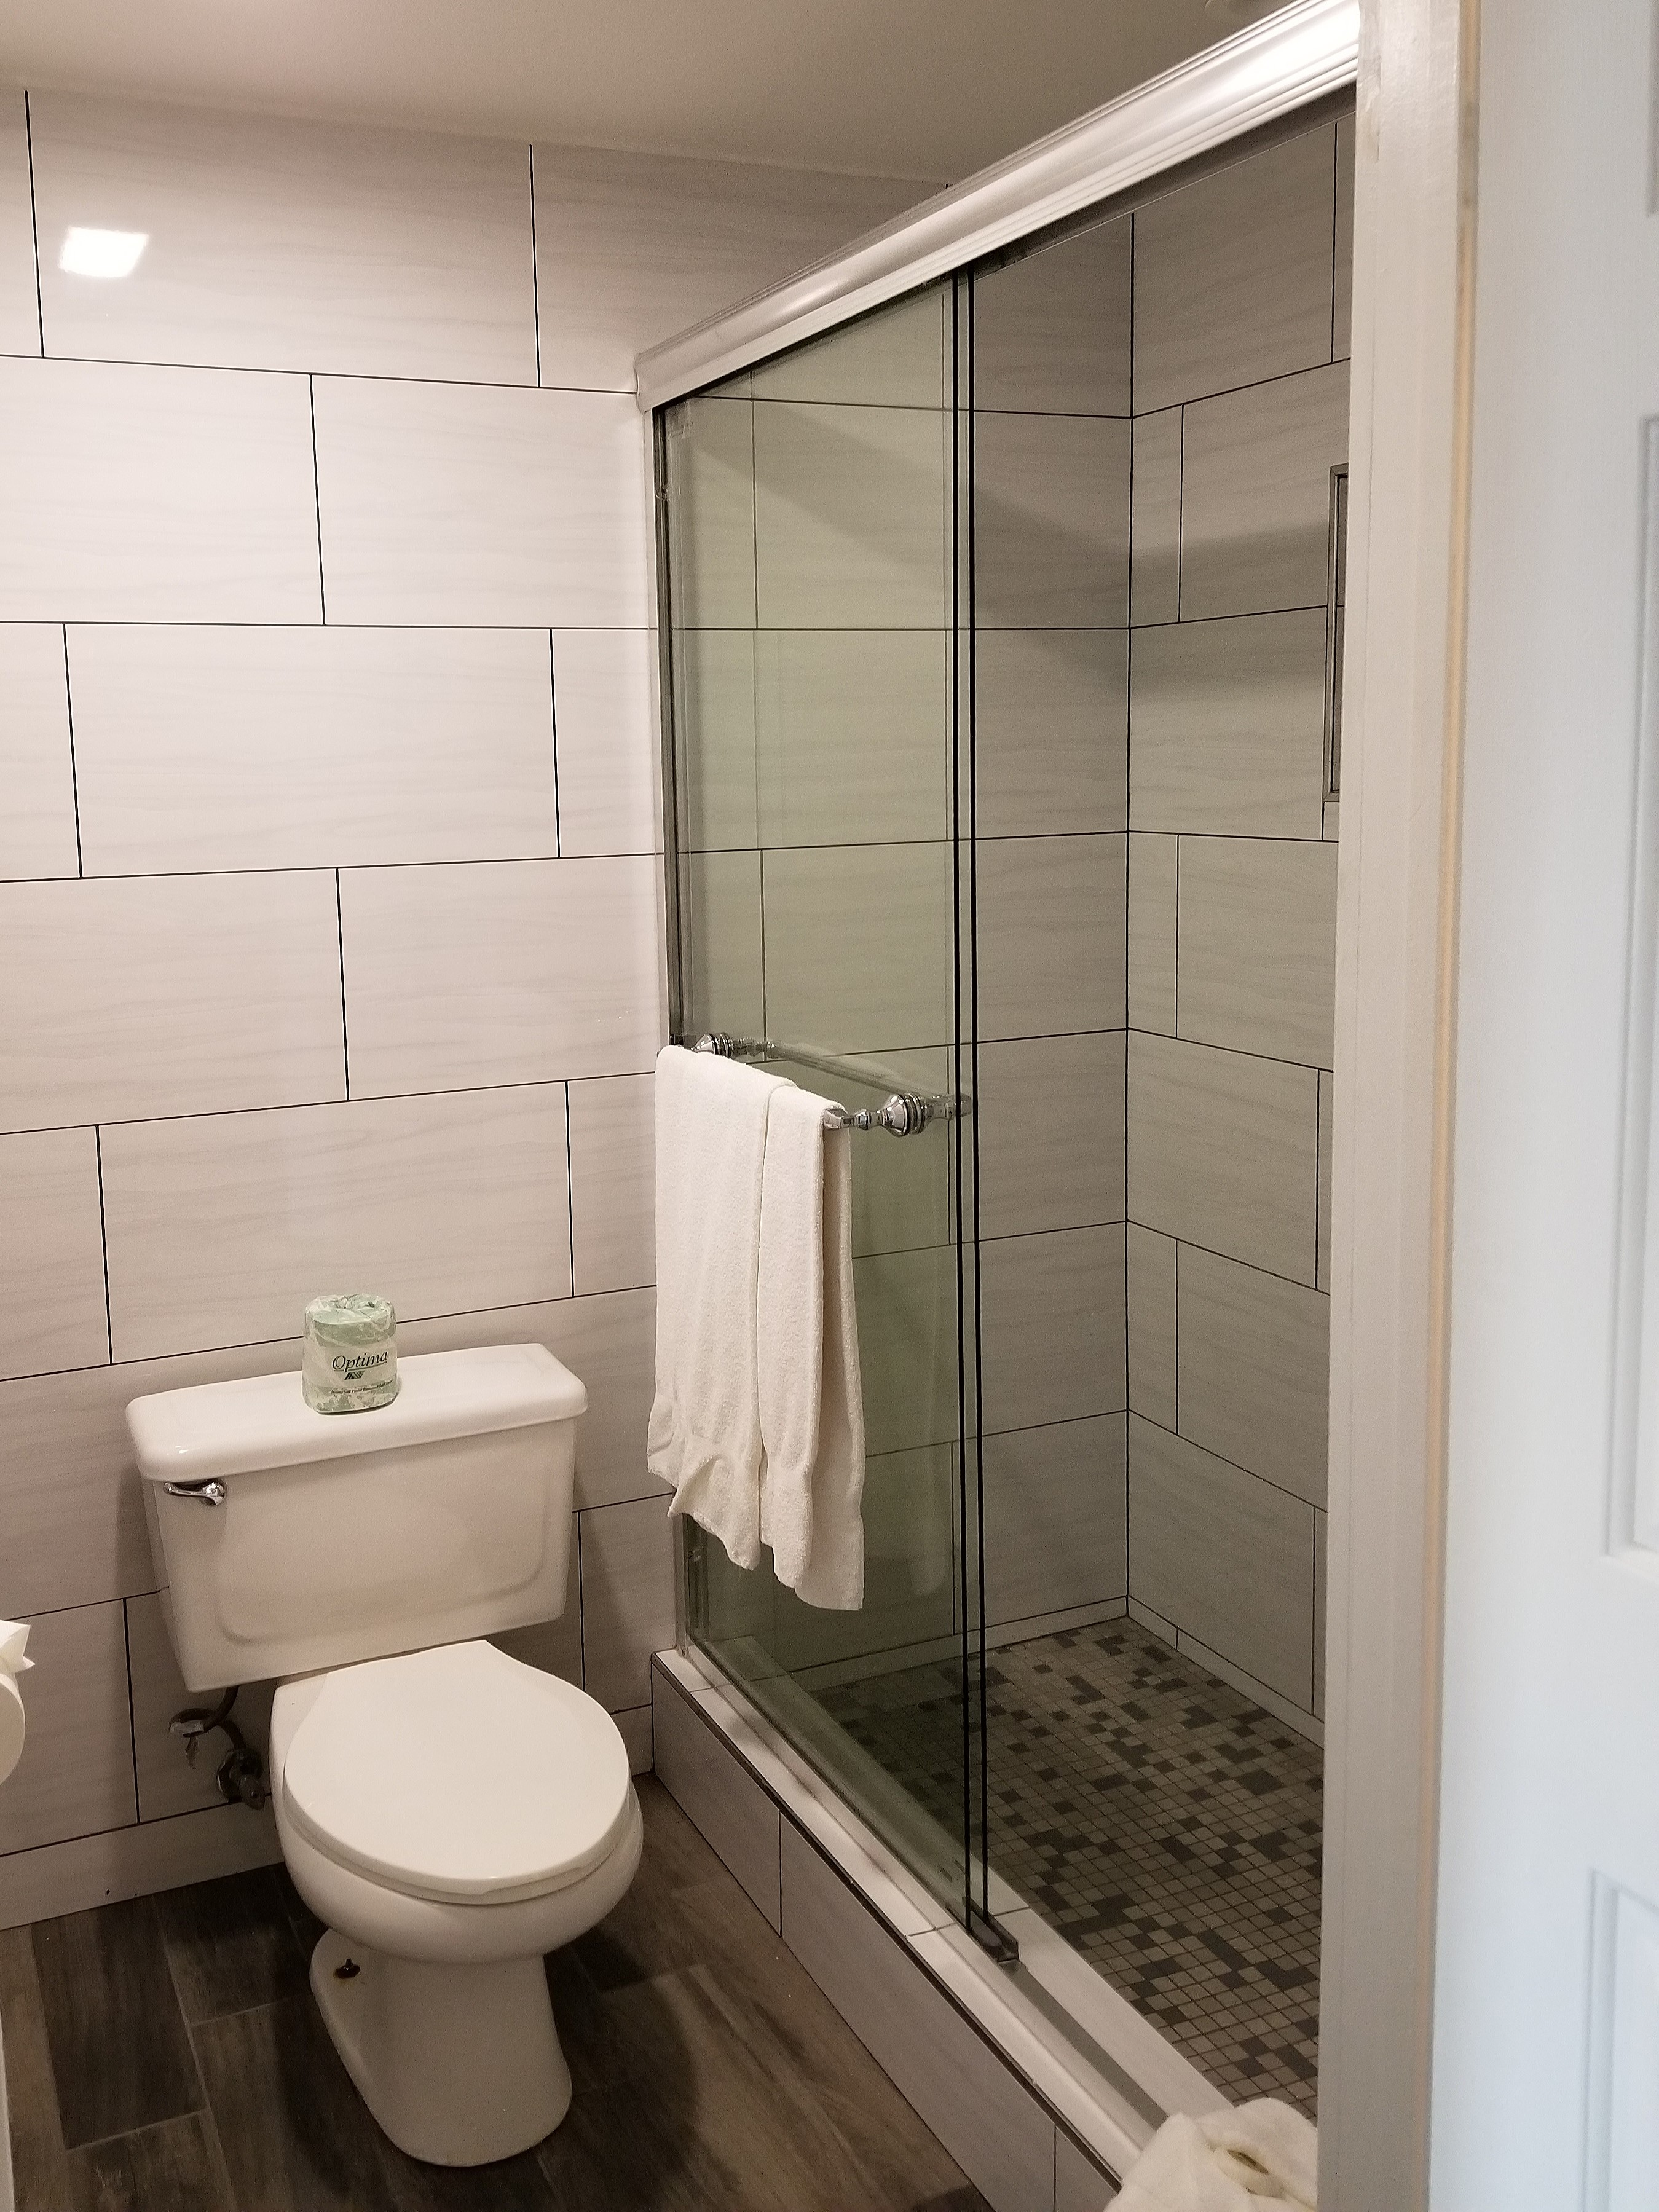 https://www.hotelsbyday.com/_data/default-hotel_image/2/10854/bathroom.jpg